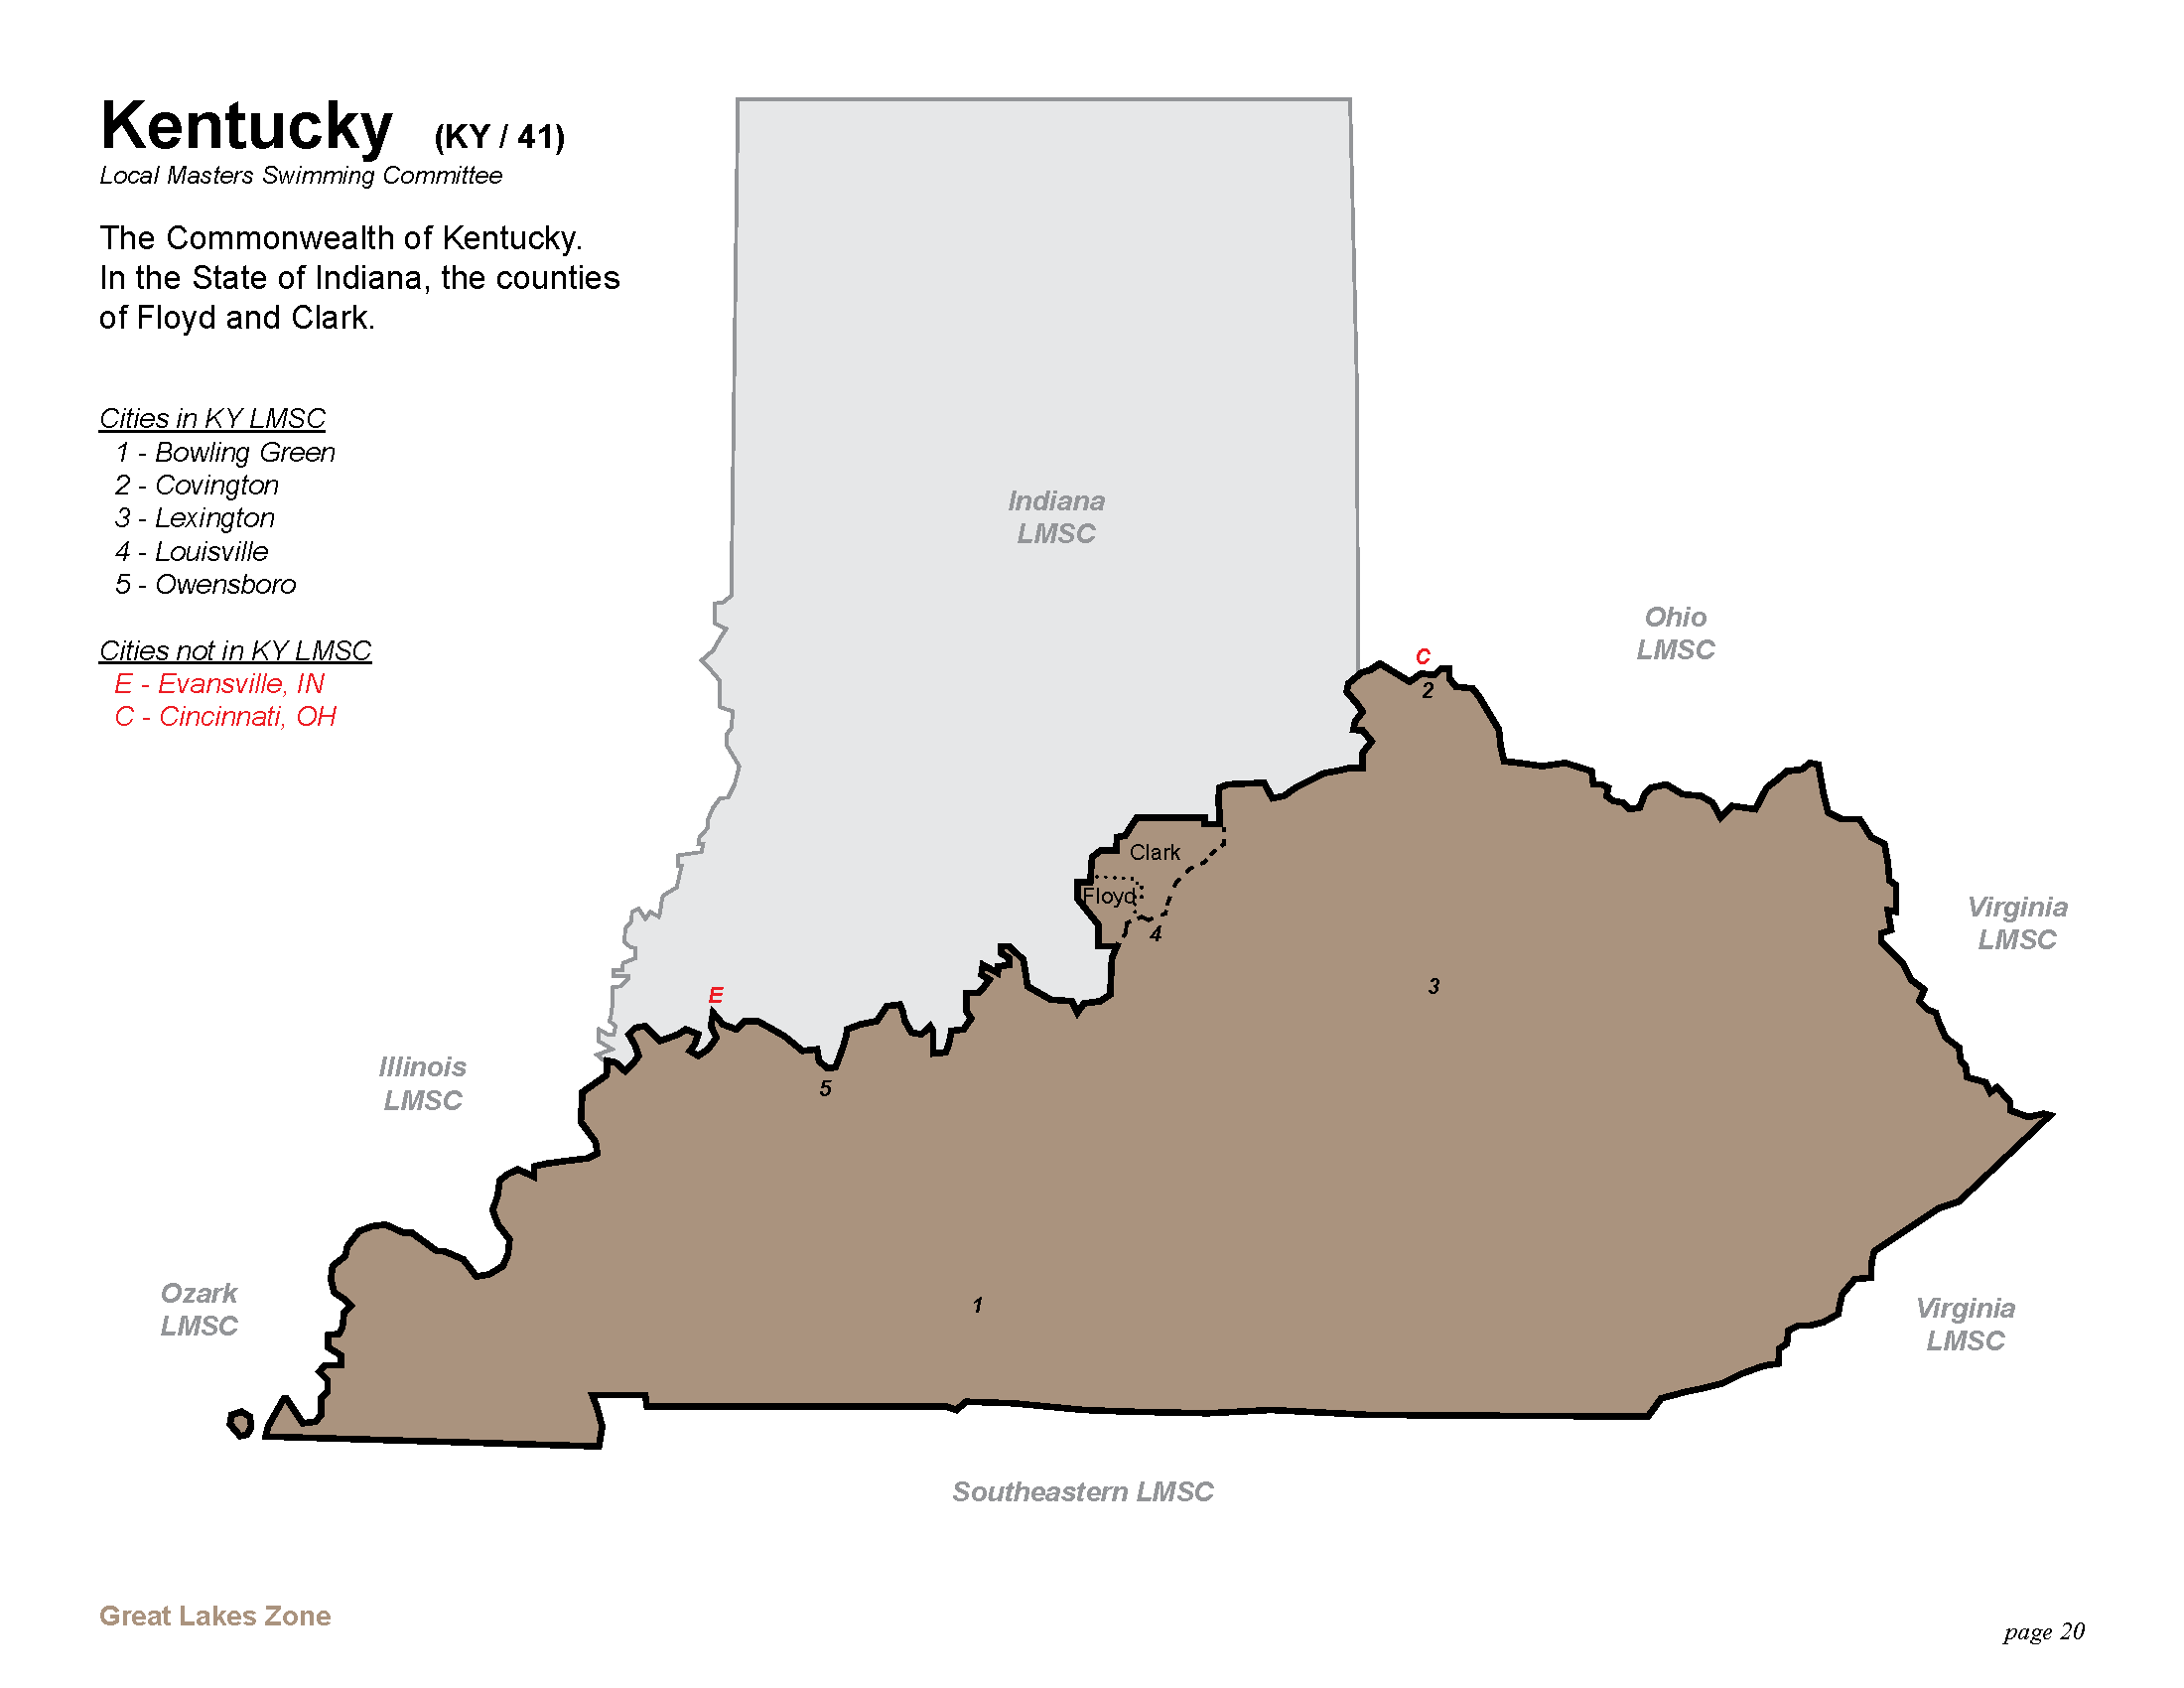 The above map provides a visual depiction of the KY-LMSC boundaries.